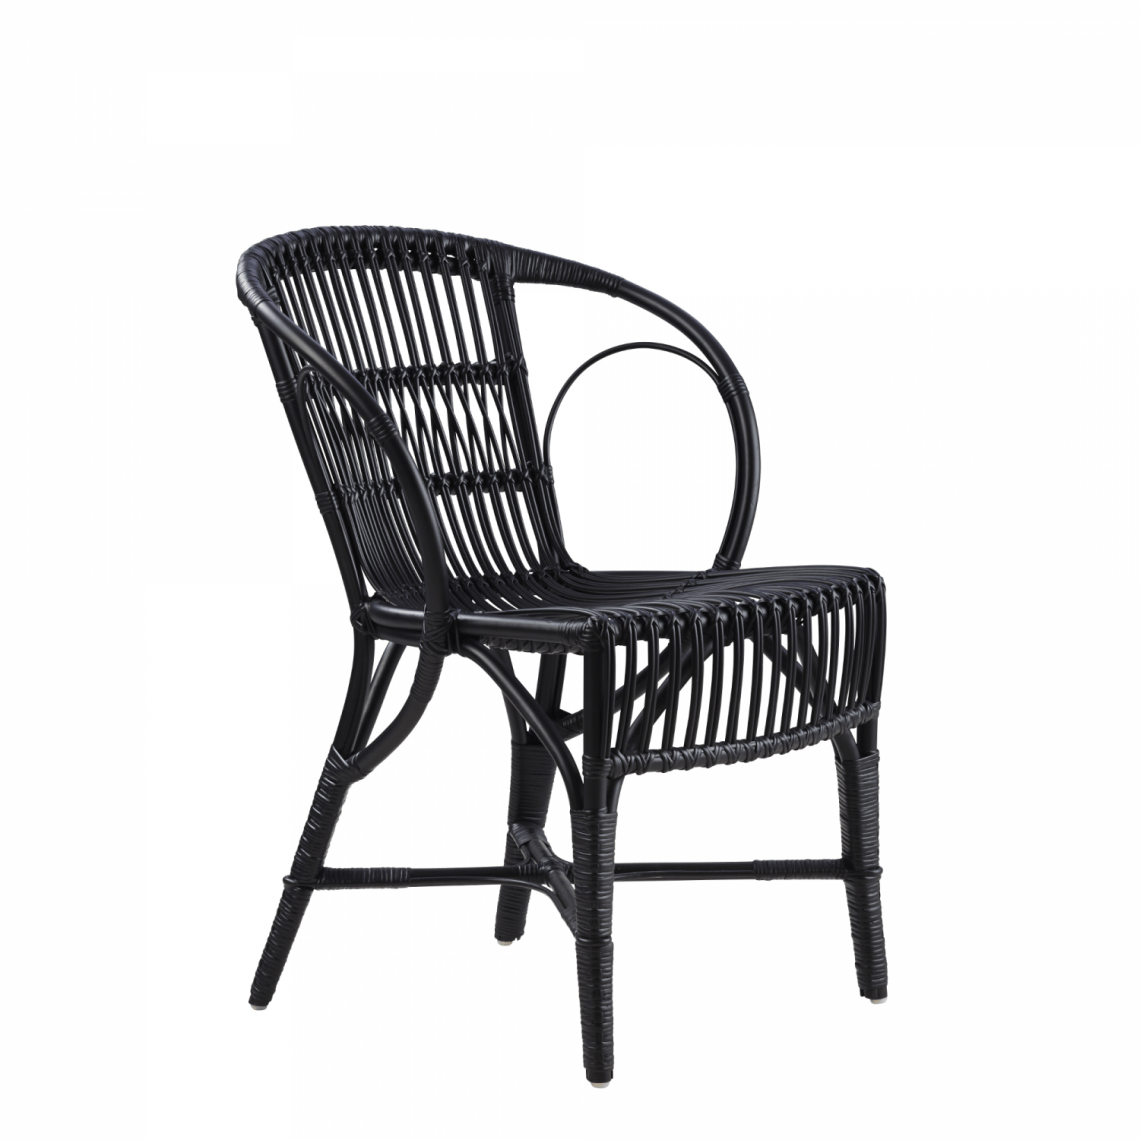 Wengler Polished Black Wicker Chair